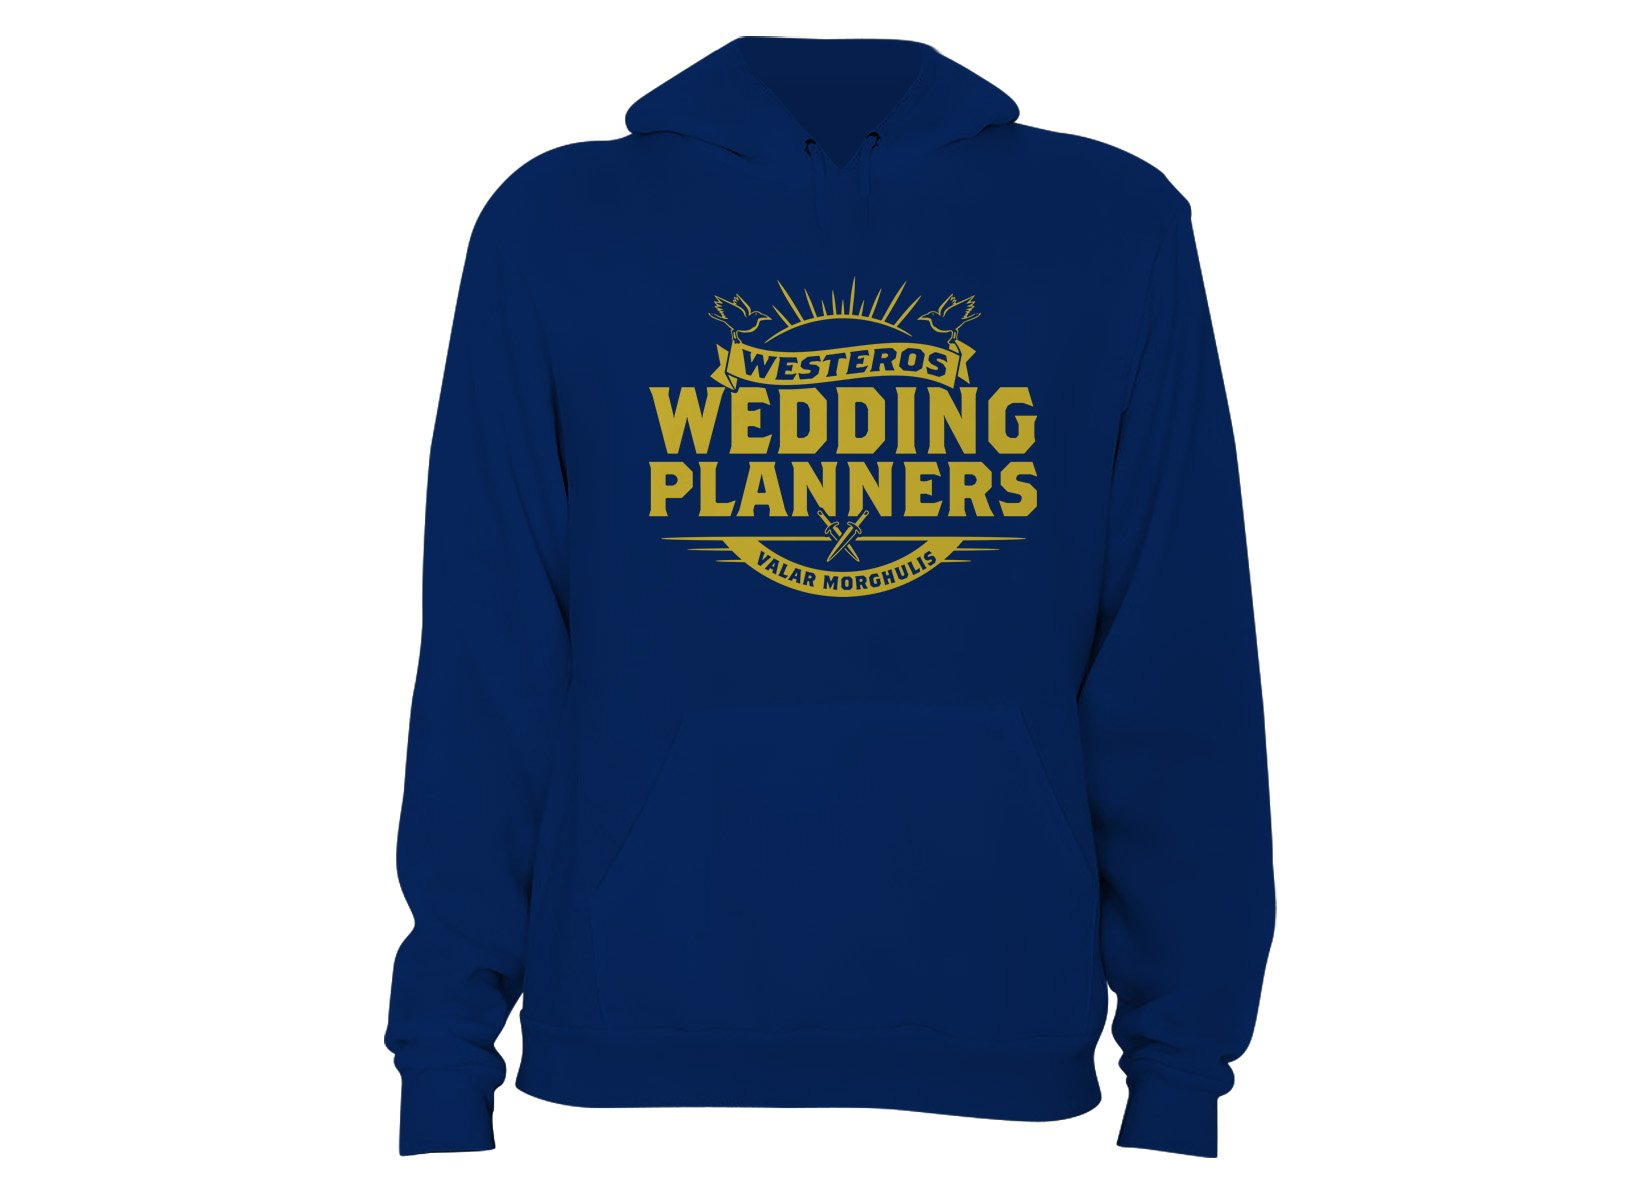 Westeros Wedding Planners on Hoodie